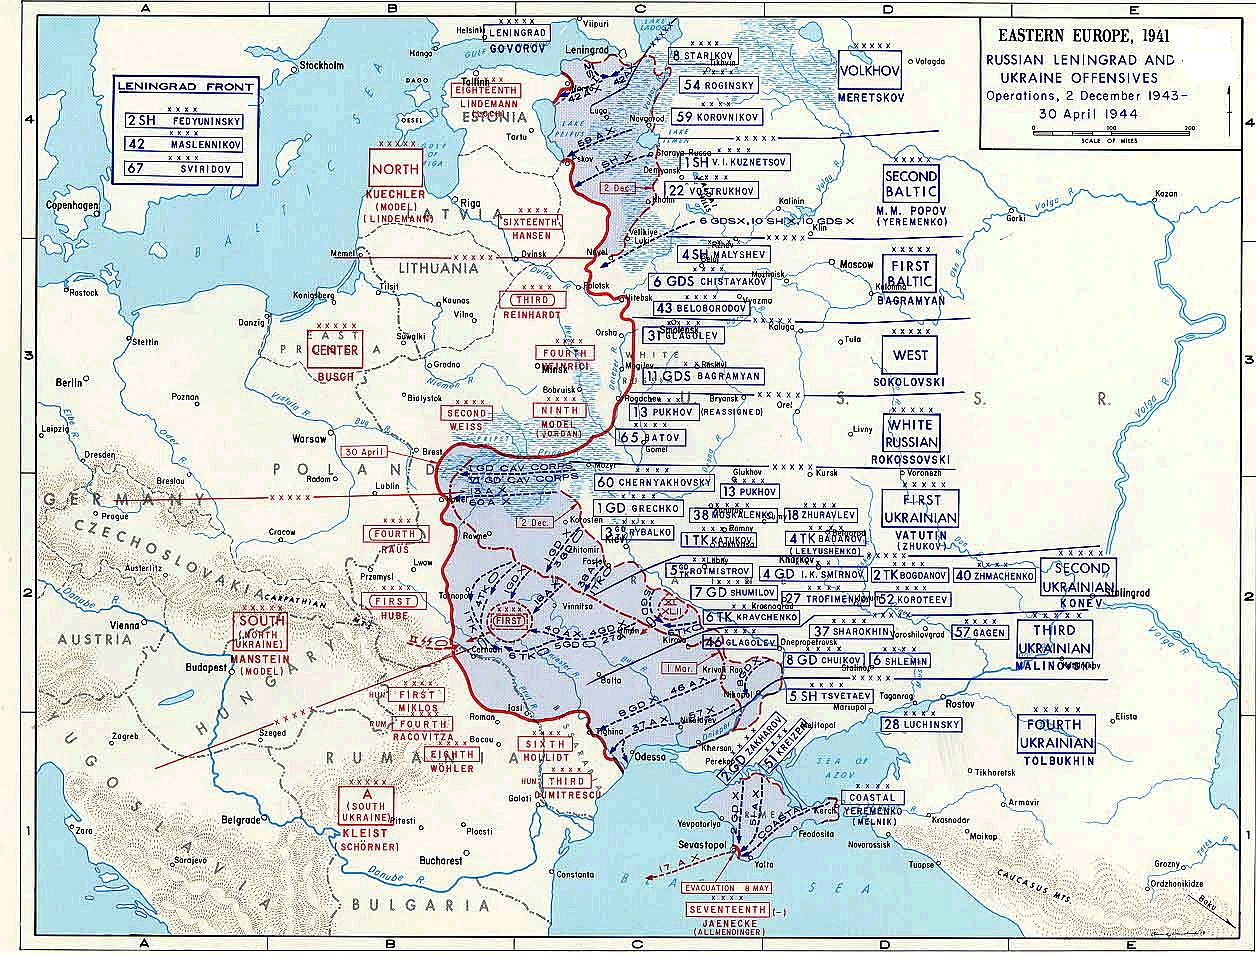 History in images pictures of war history ww2 the eastern front history in images pictures of war history ww2 the eastern front ww2 in maps color gumiabroncs Choice Image